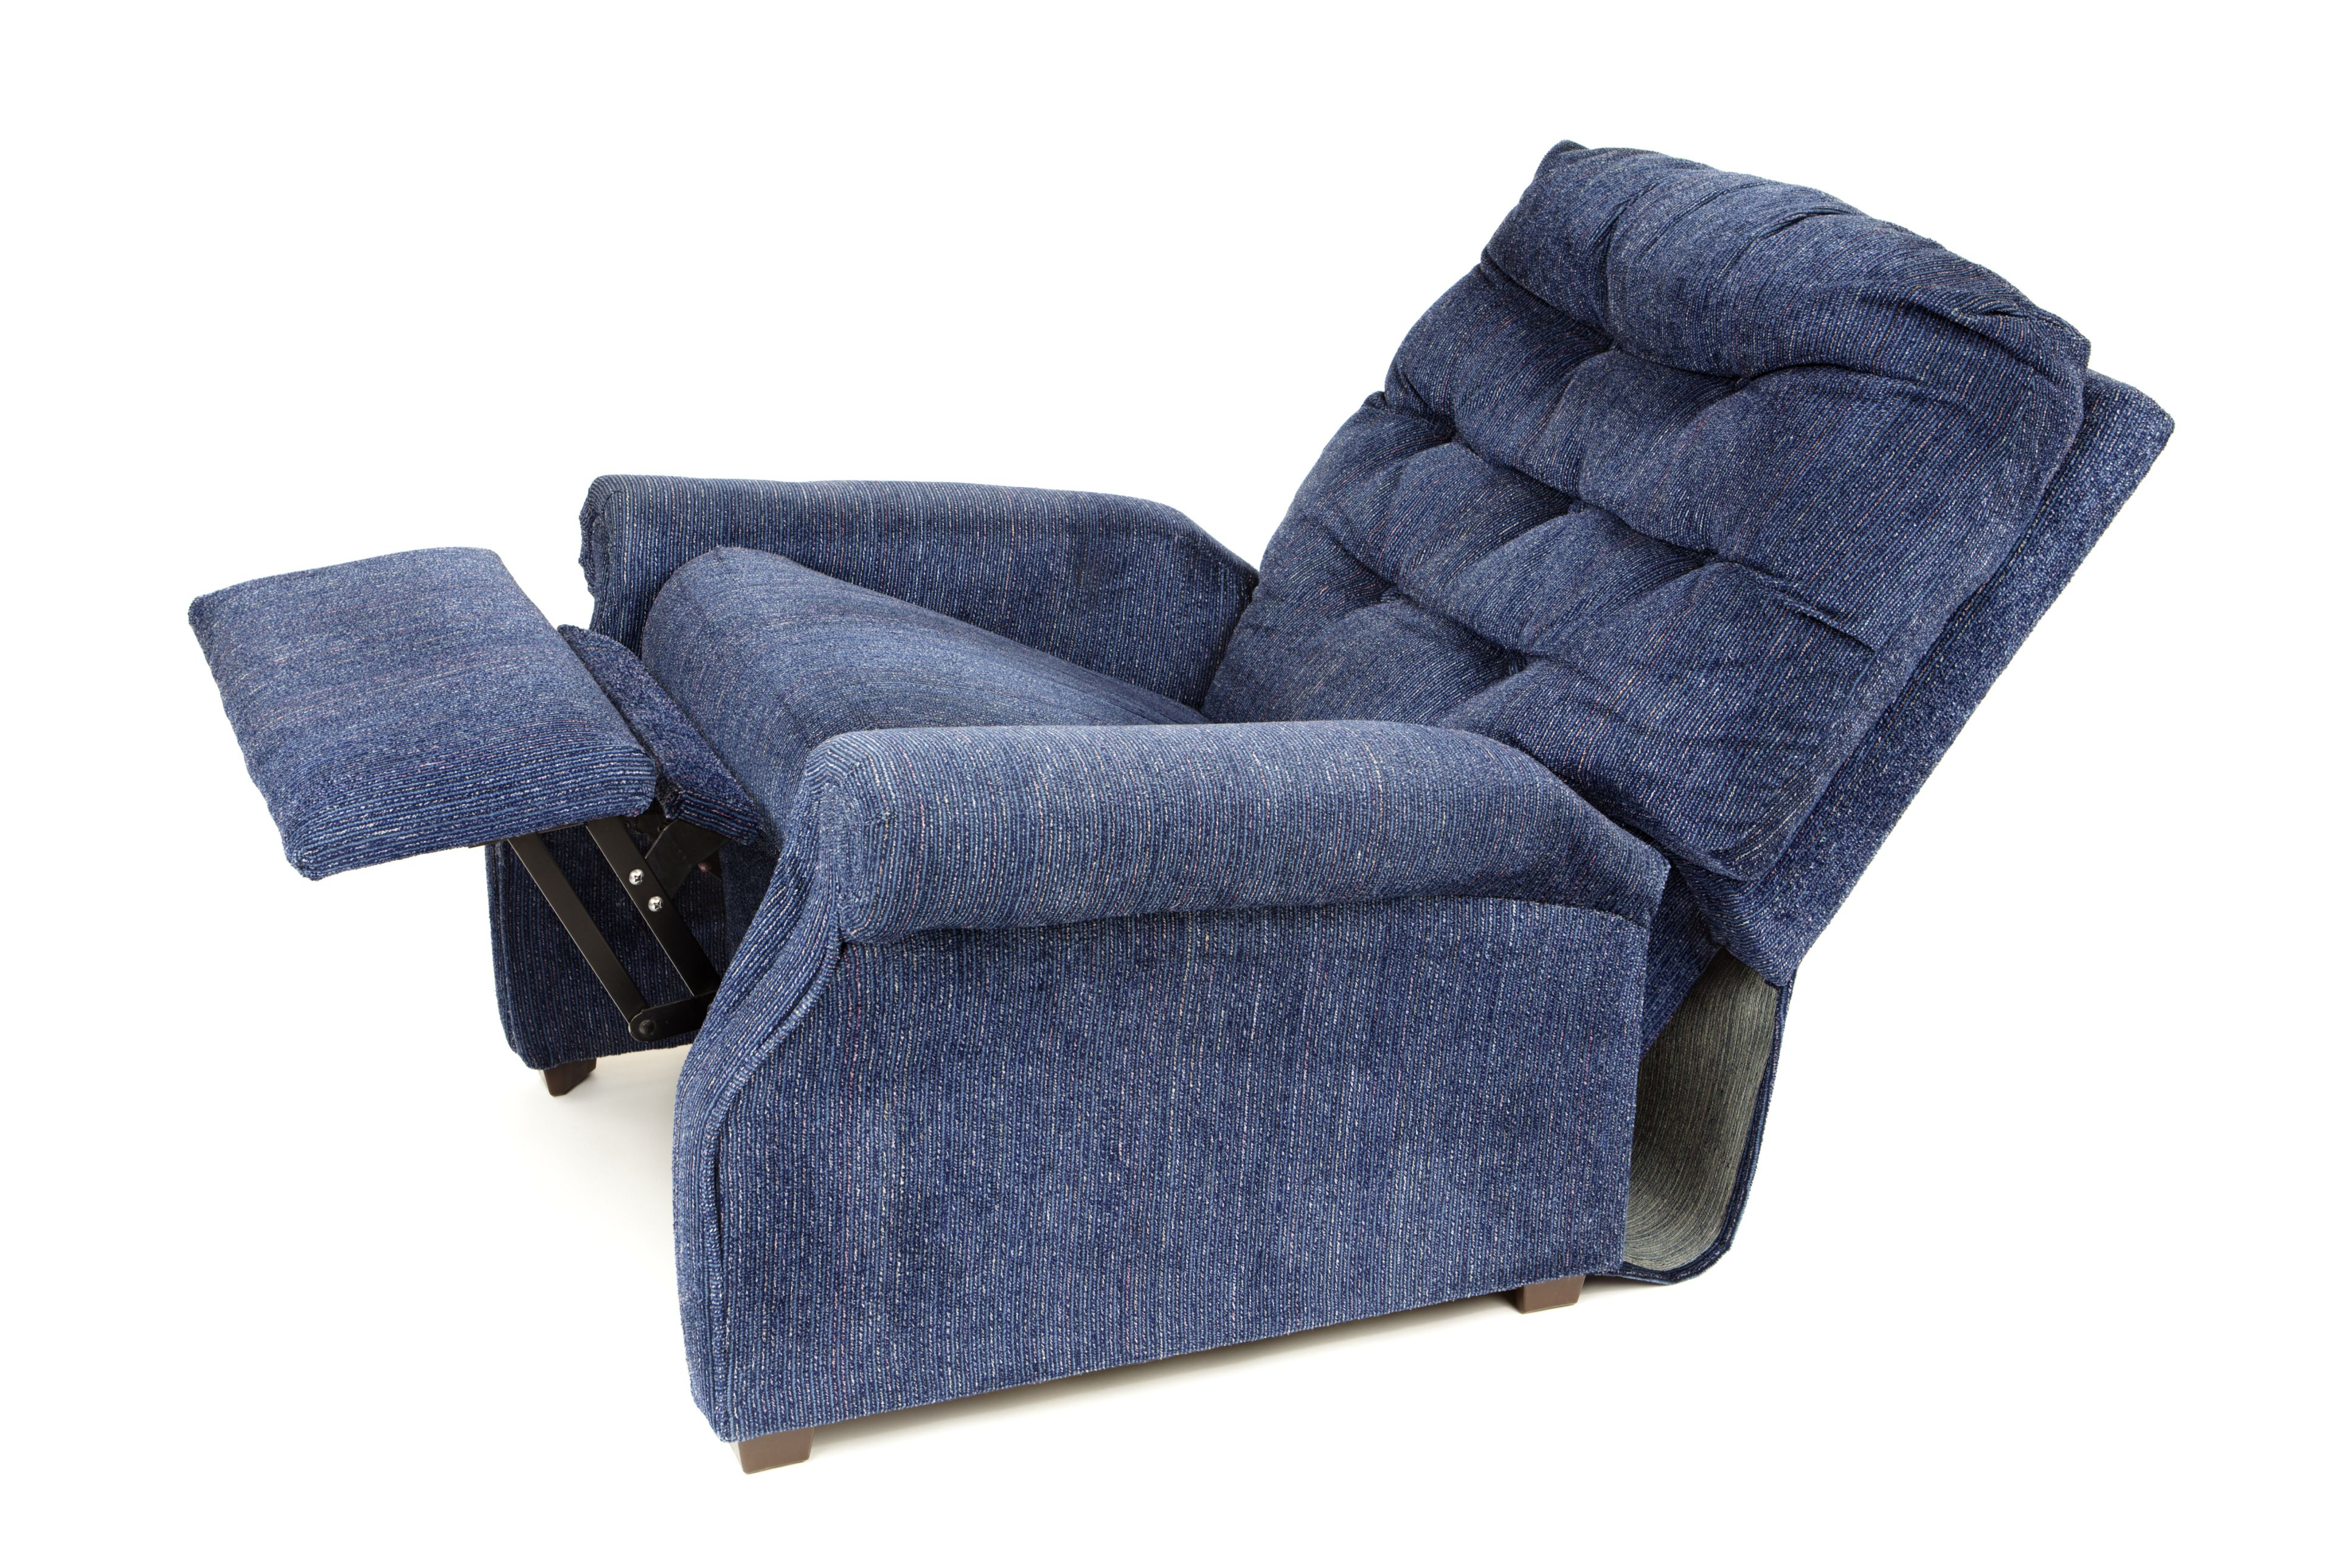 lazy boy lift chairs for sale asian floor chair rent a recliner your cruise hotel room or cottage